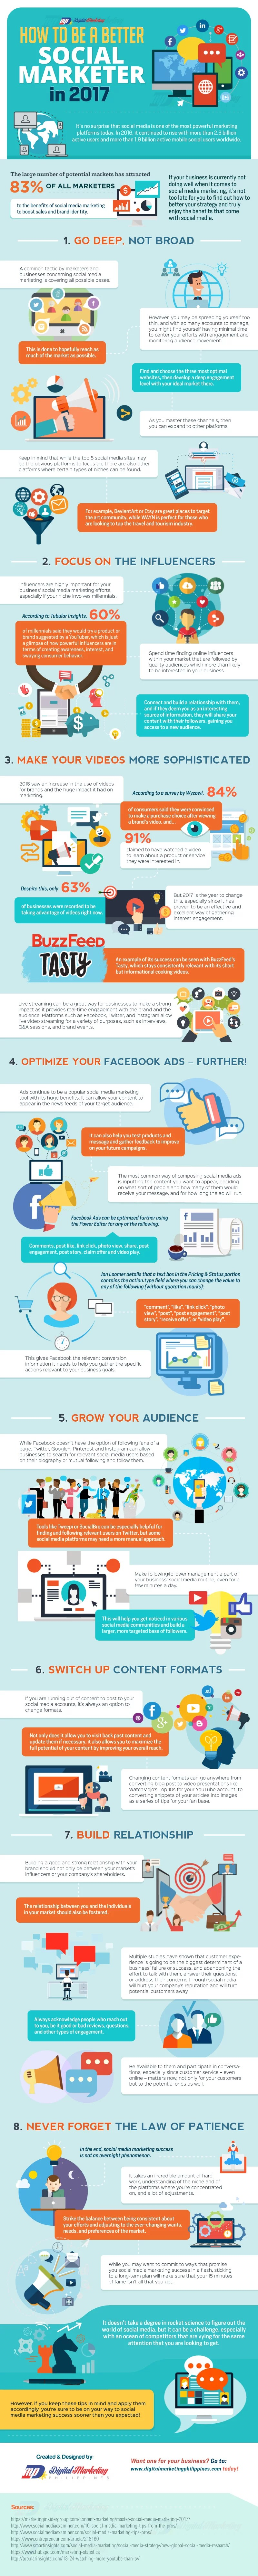 How to Be a Better Social Marketer in 2017 (Infographic) - An Infographic from Digital Marketing Philippines